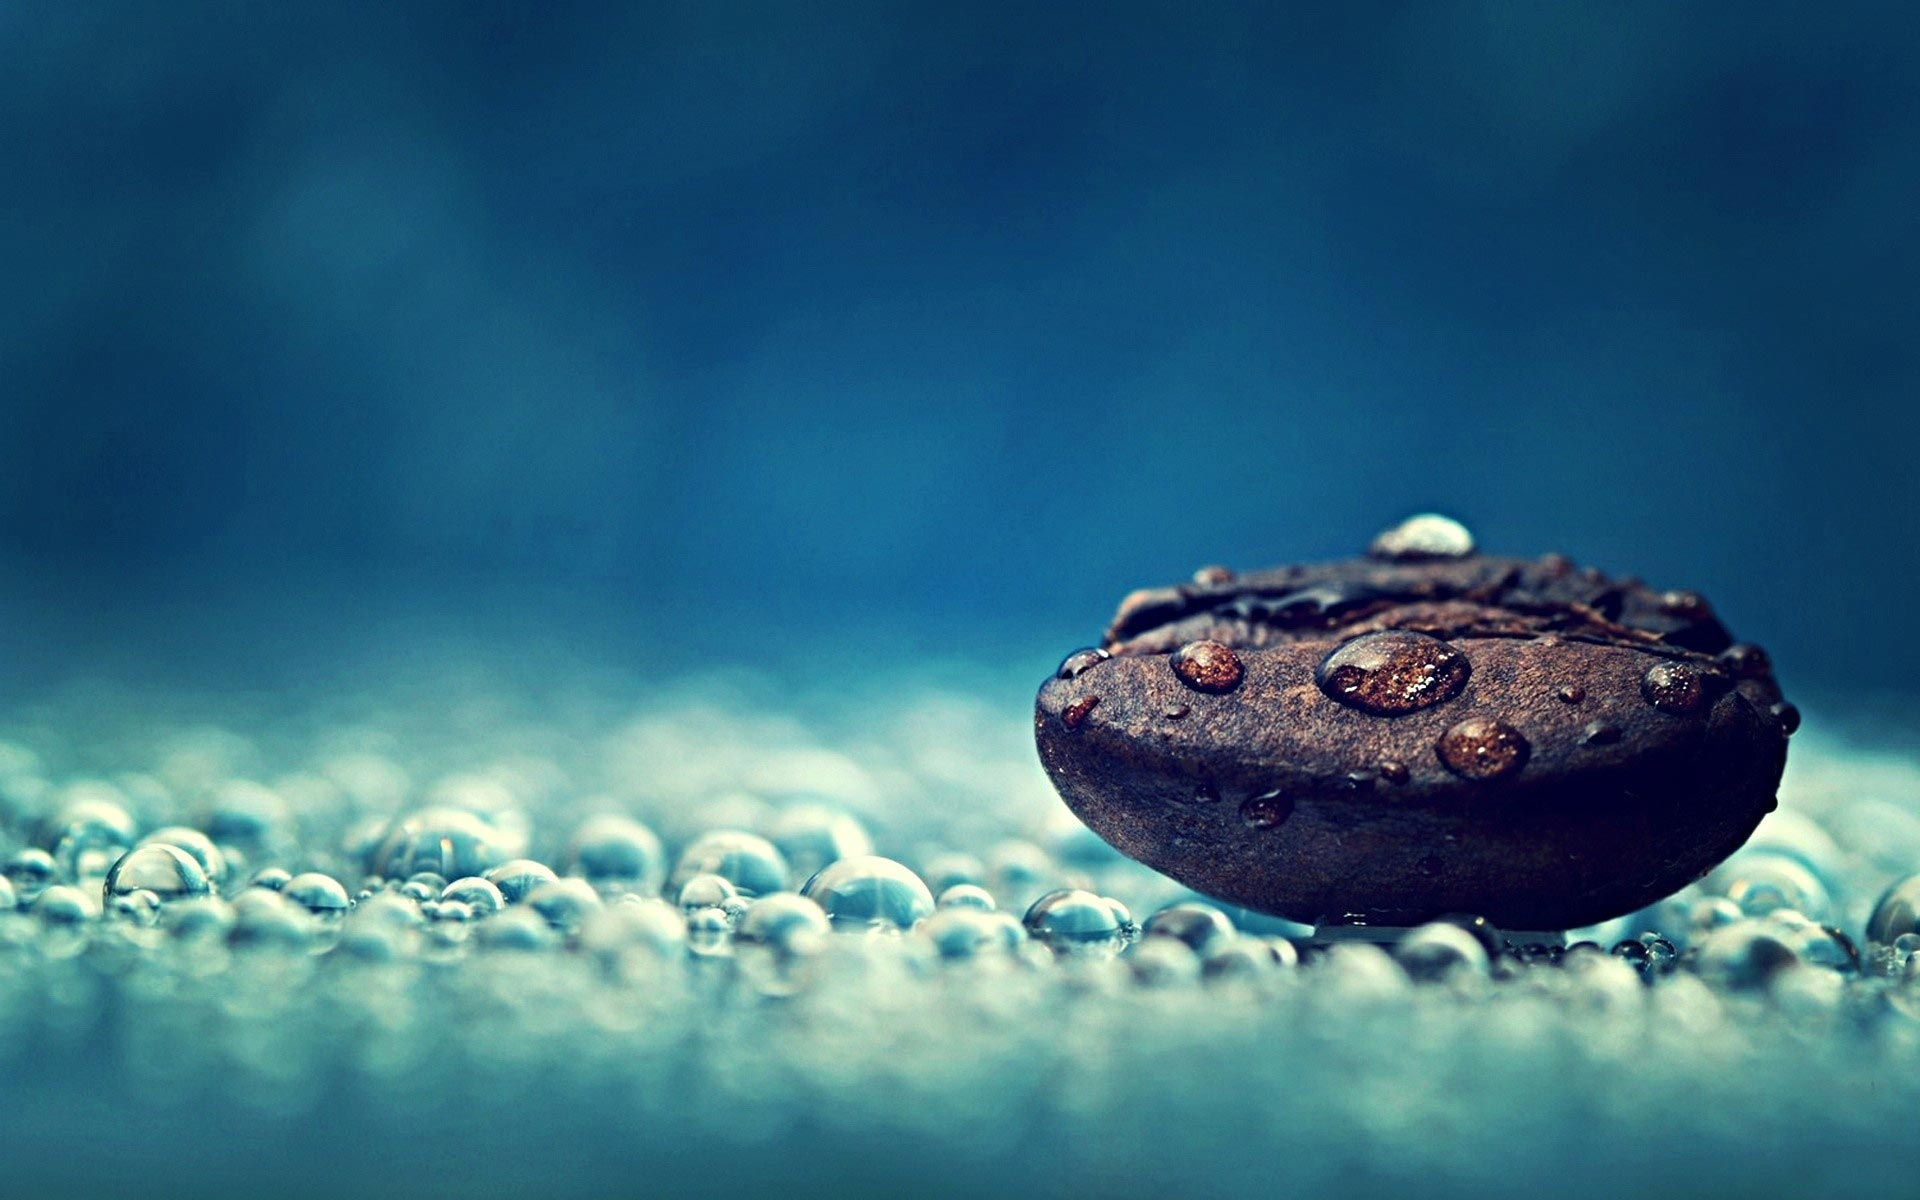 Coffee Bean with Water Drops Wallpaper